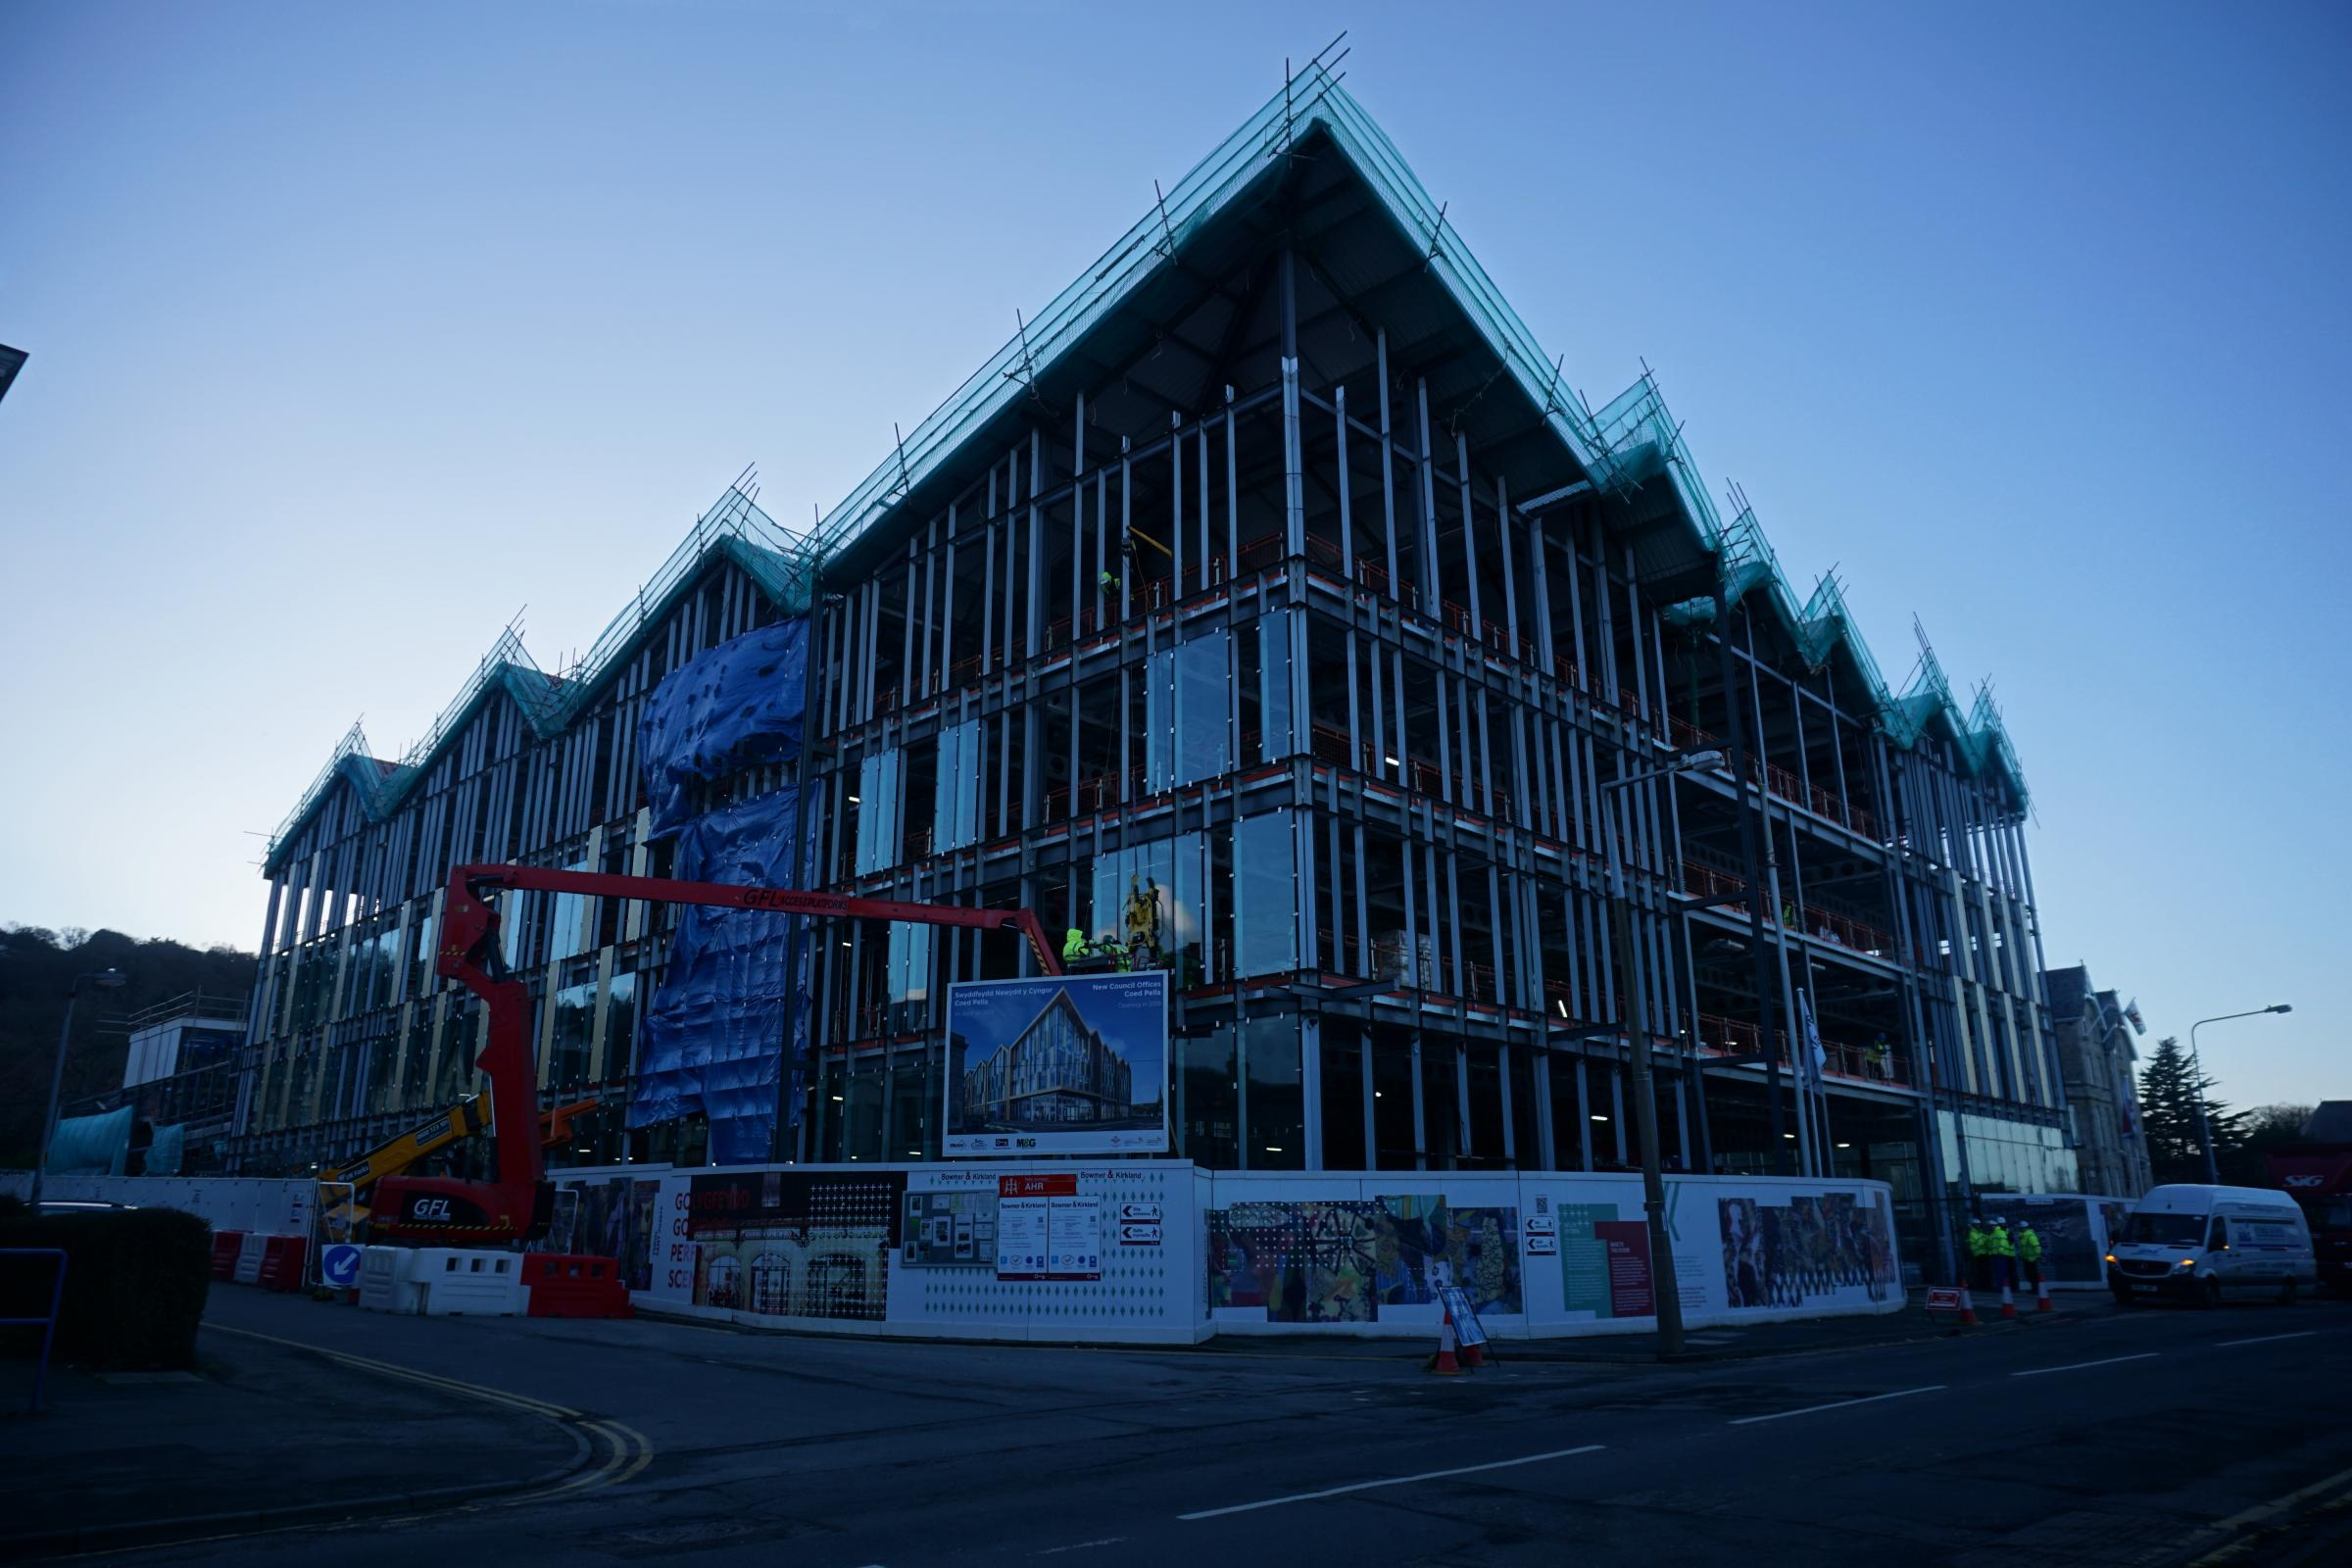 Construction is well underway on the new council building in Colwyn Bay. Picture: Patrick Glover